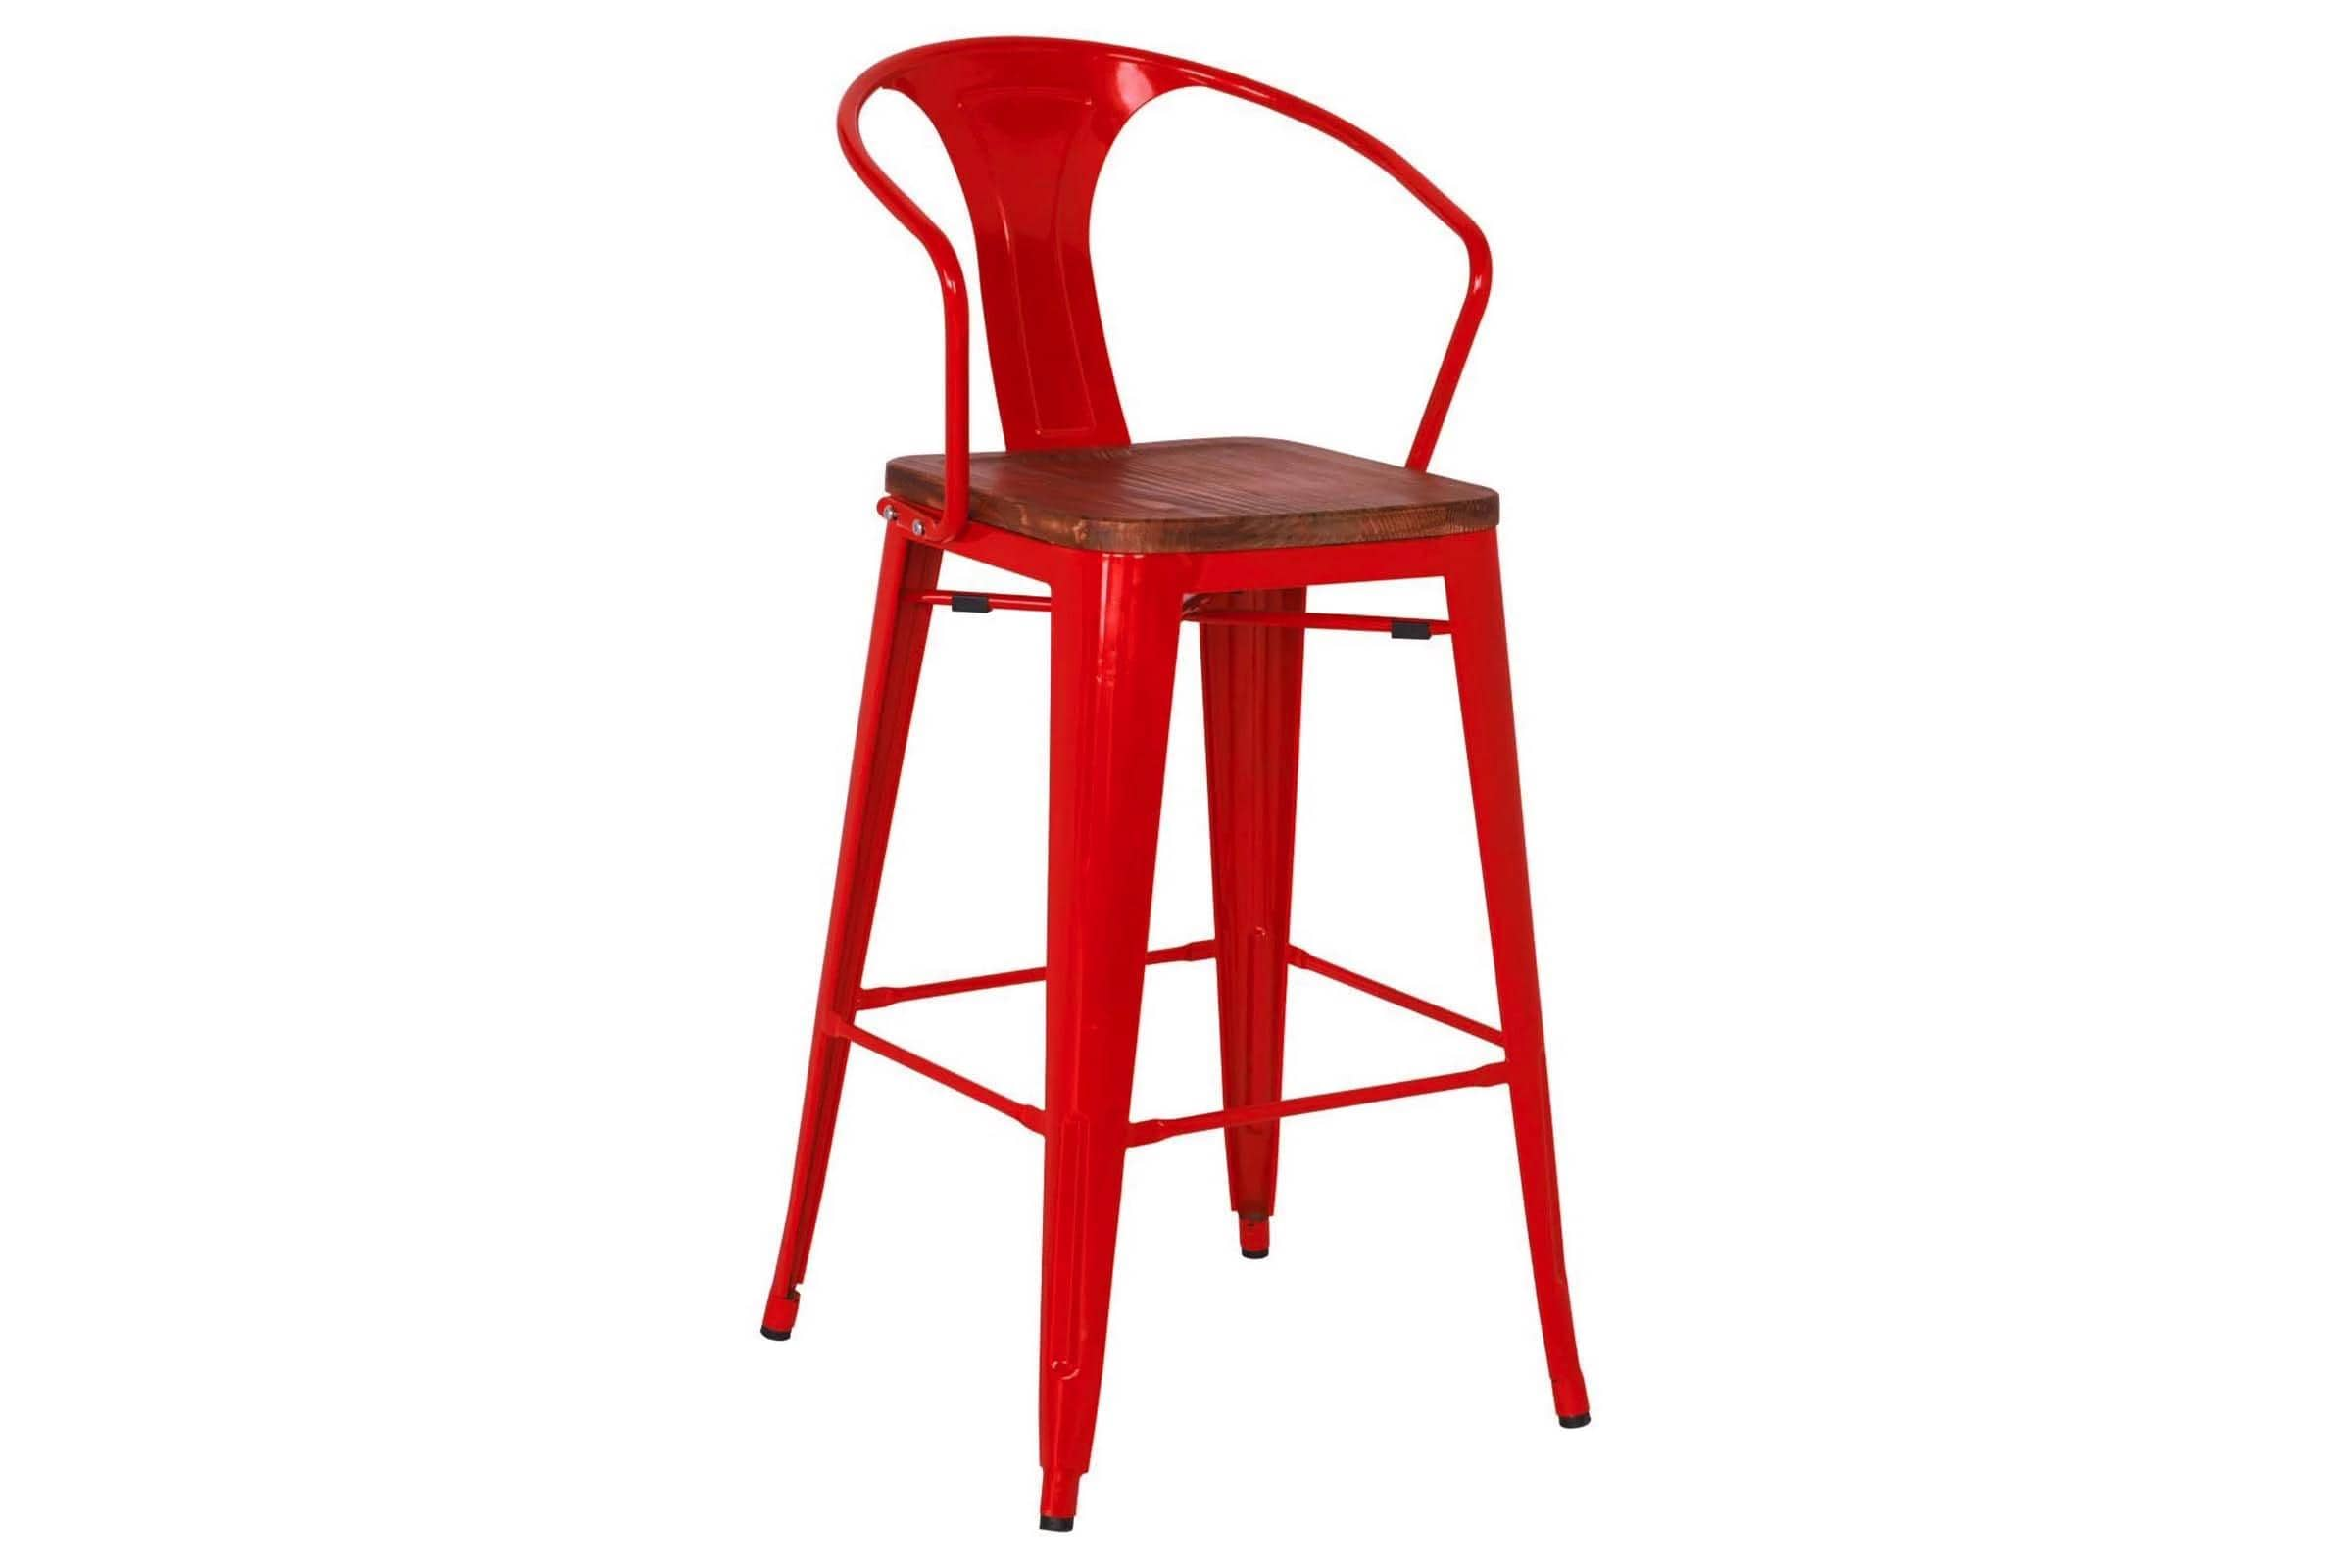 Grand Metal Bar Chair RED - SET OF 4 - - Accent Chair - Furniture sold by Apt2B